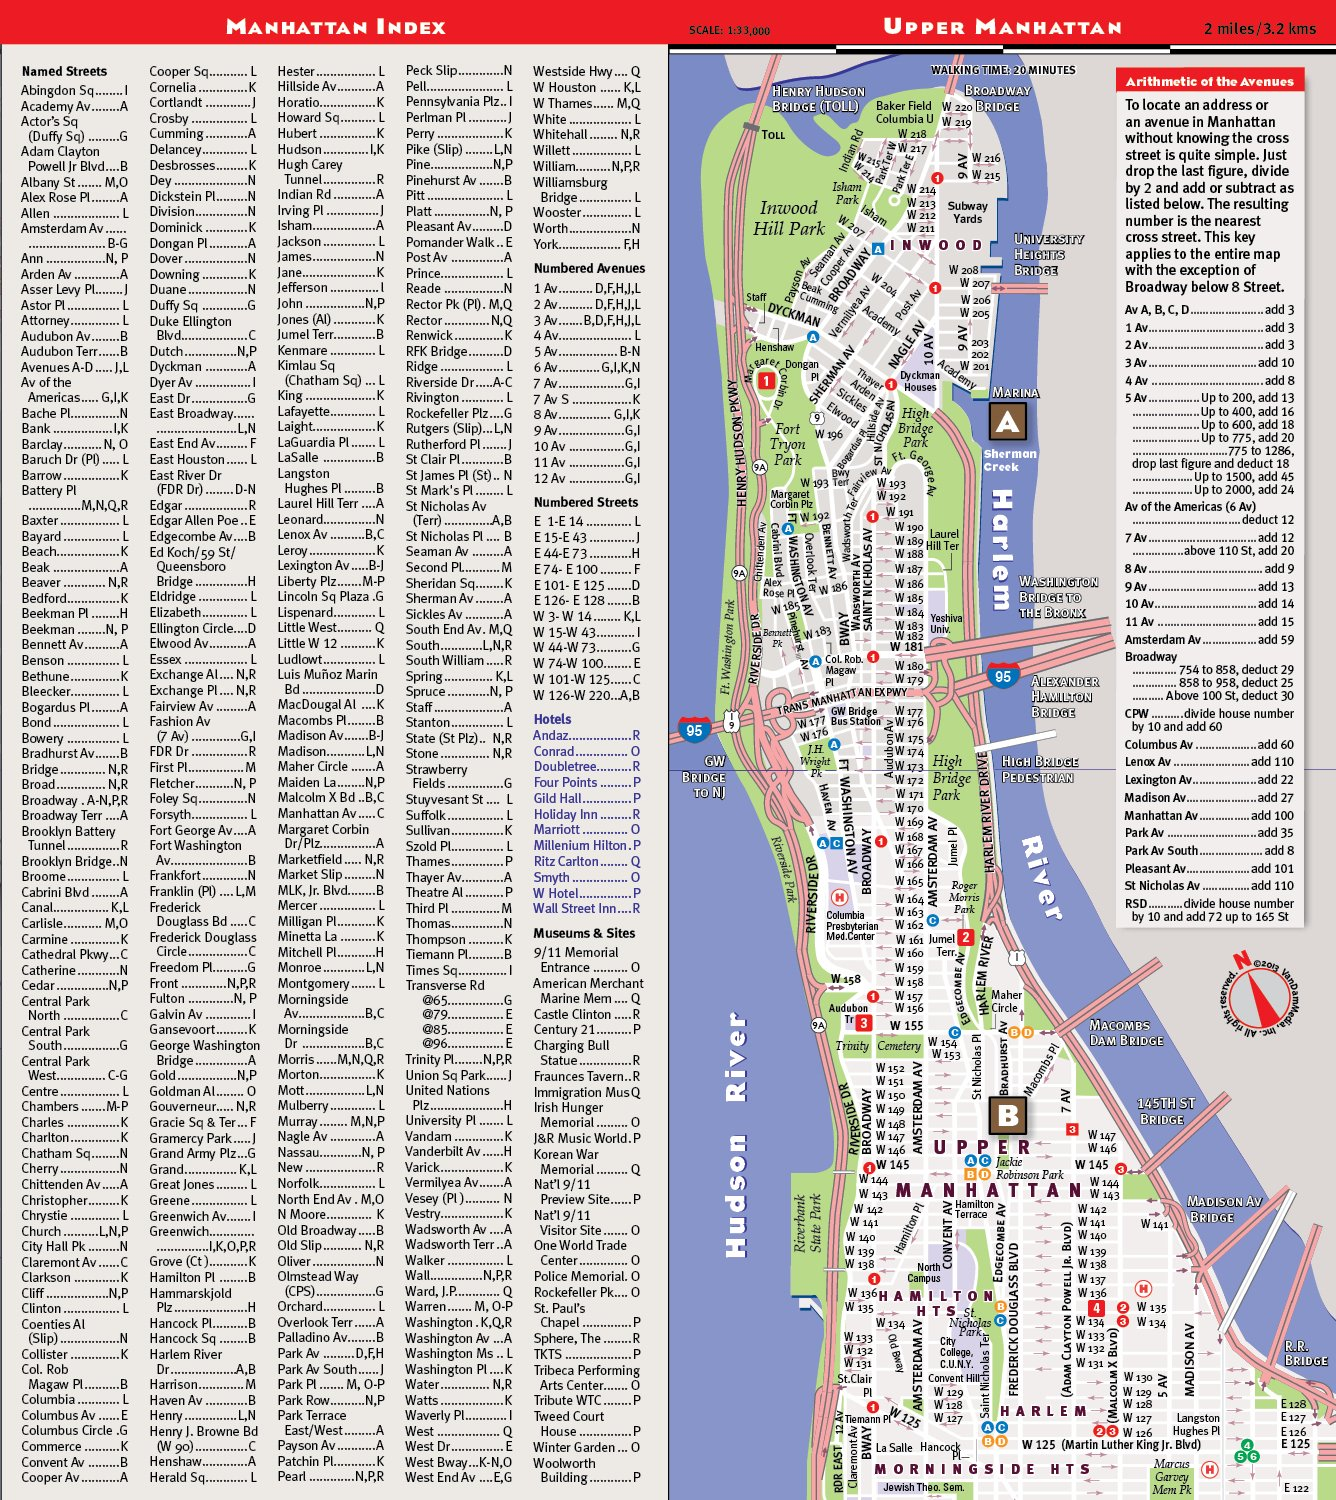 StreetSmart NYC Map 9/11 Edition by VanDam -- Laminated City ... on manhattan bus map new york, manhattan ny map, manhattan map printable, manhattan map penn station, manhattan neighborhood map, manhattan map hotels, manhattan points of interest map, manhattan subway map, map of manhattan new york city attractions, florida state with attractions, map of midtown manhattan attractions, manhattan tourist map, manhattan map grand central station, manhattan sightseeing, manhattan tour map, manhattan street map, manhattan map nyc, new york top 10 attractions, lower manhattan map and attractions, manhattan road map,